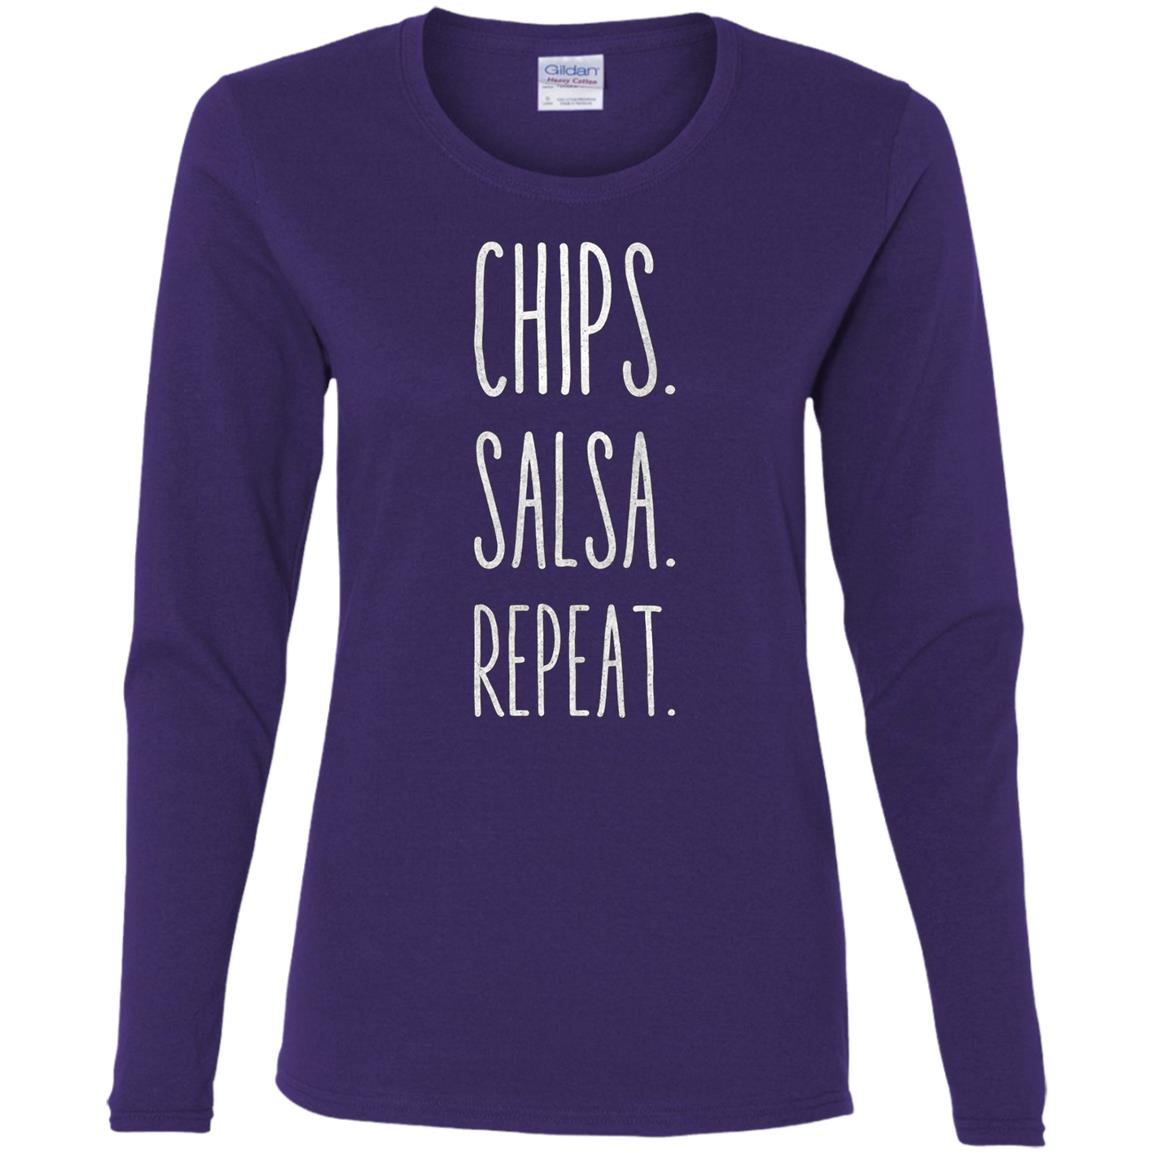 Chips. Salsa. Repeat. Funny Women Long Sleeve T-Shirt